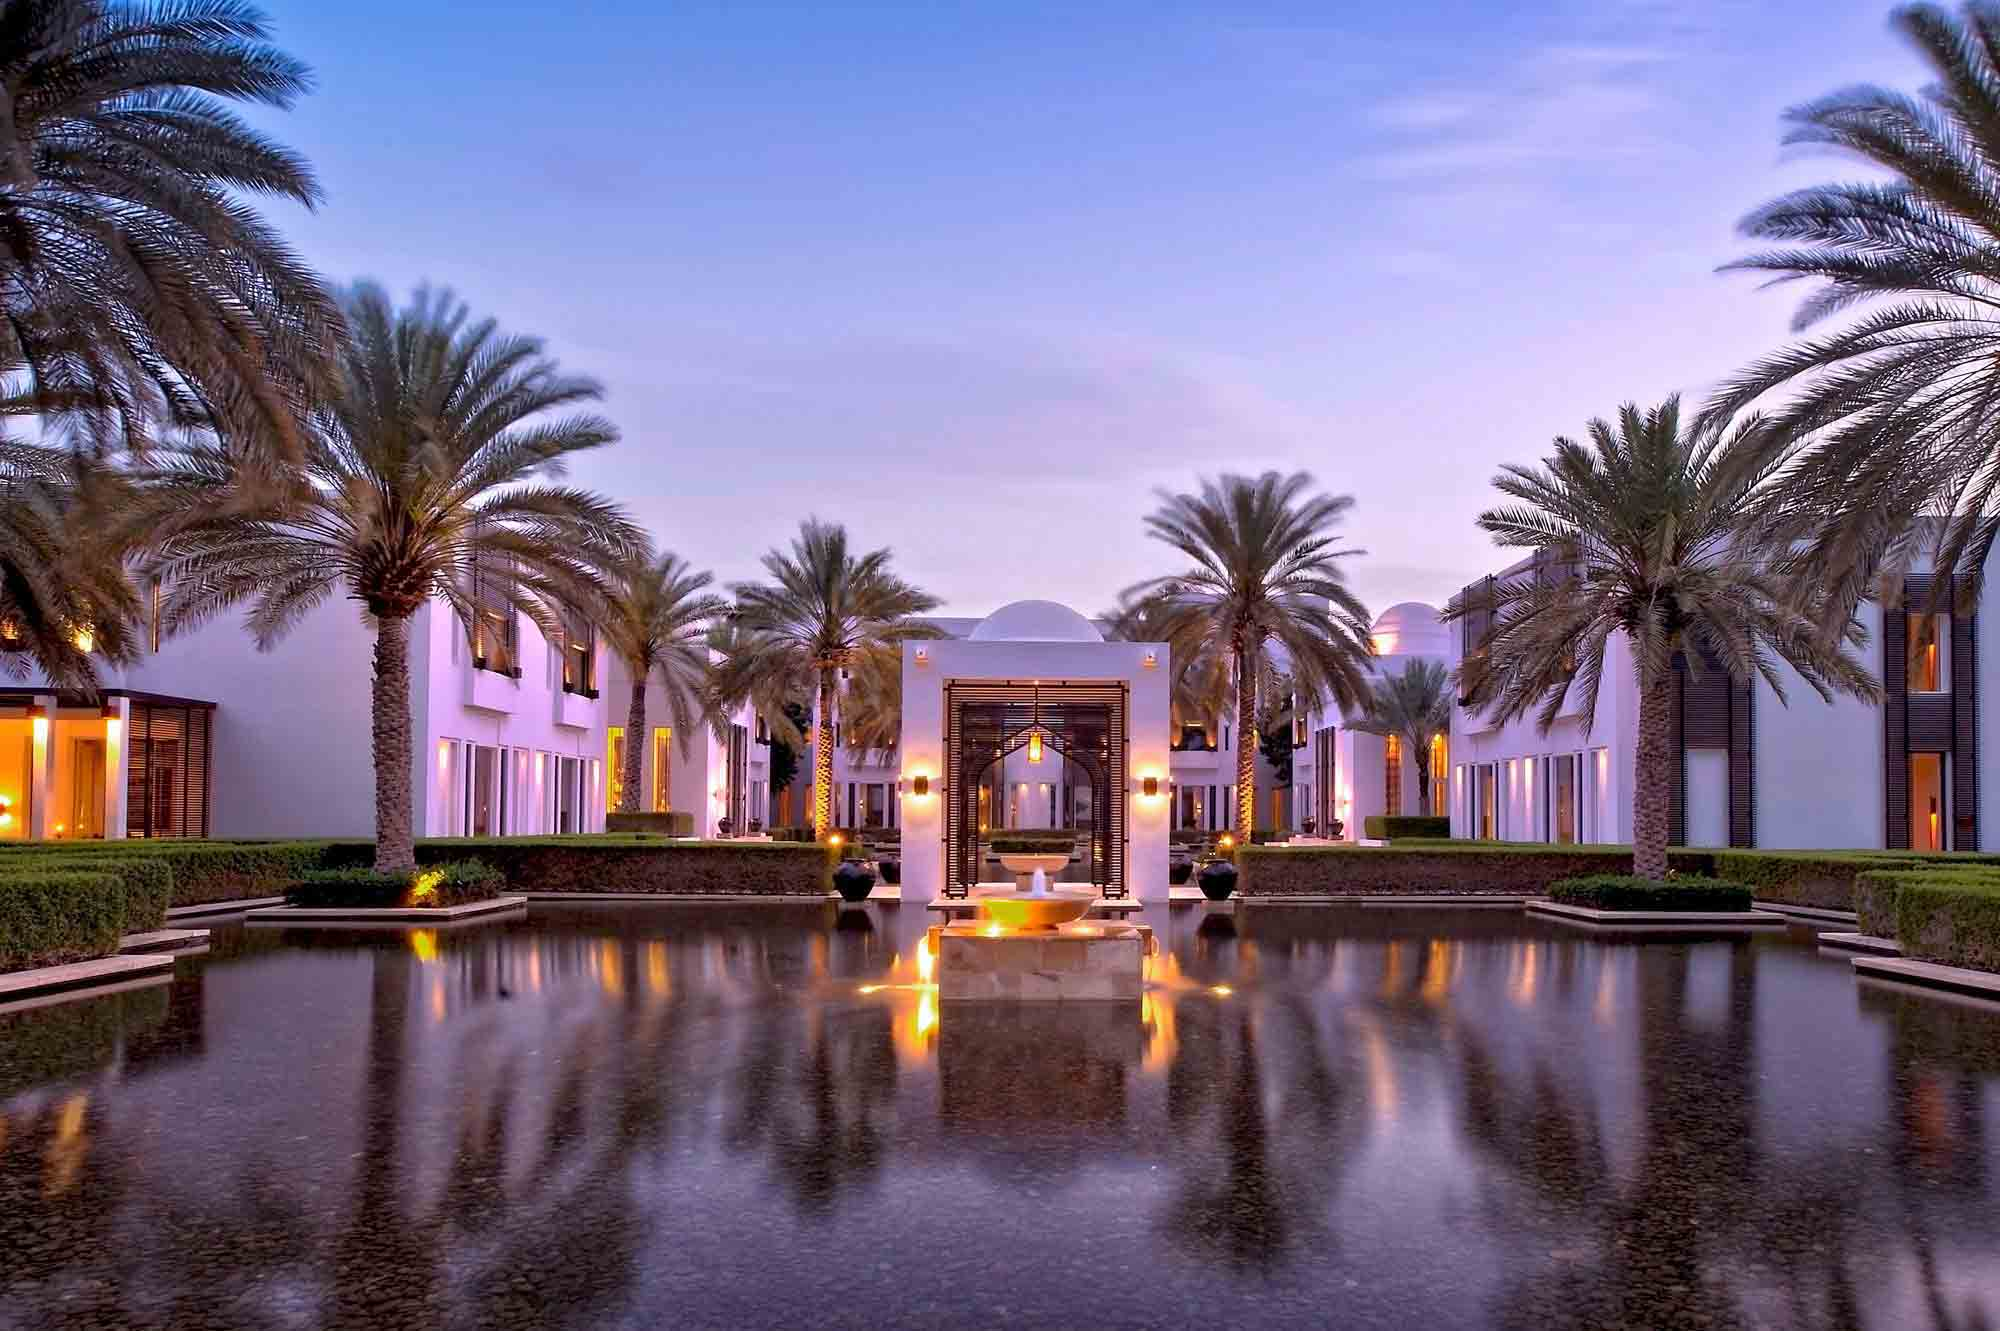 JPEG - onefinemoment_Oman_The-Chedi_07.jpg